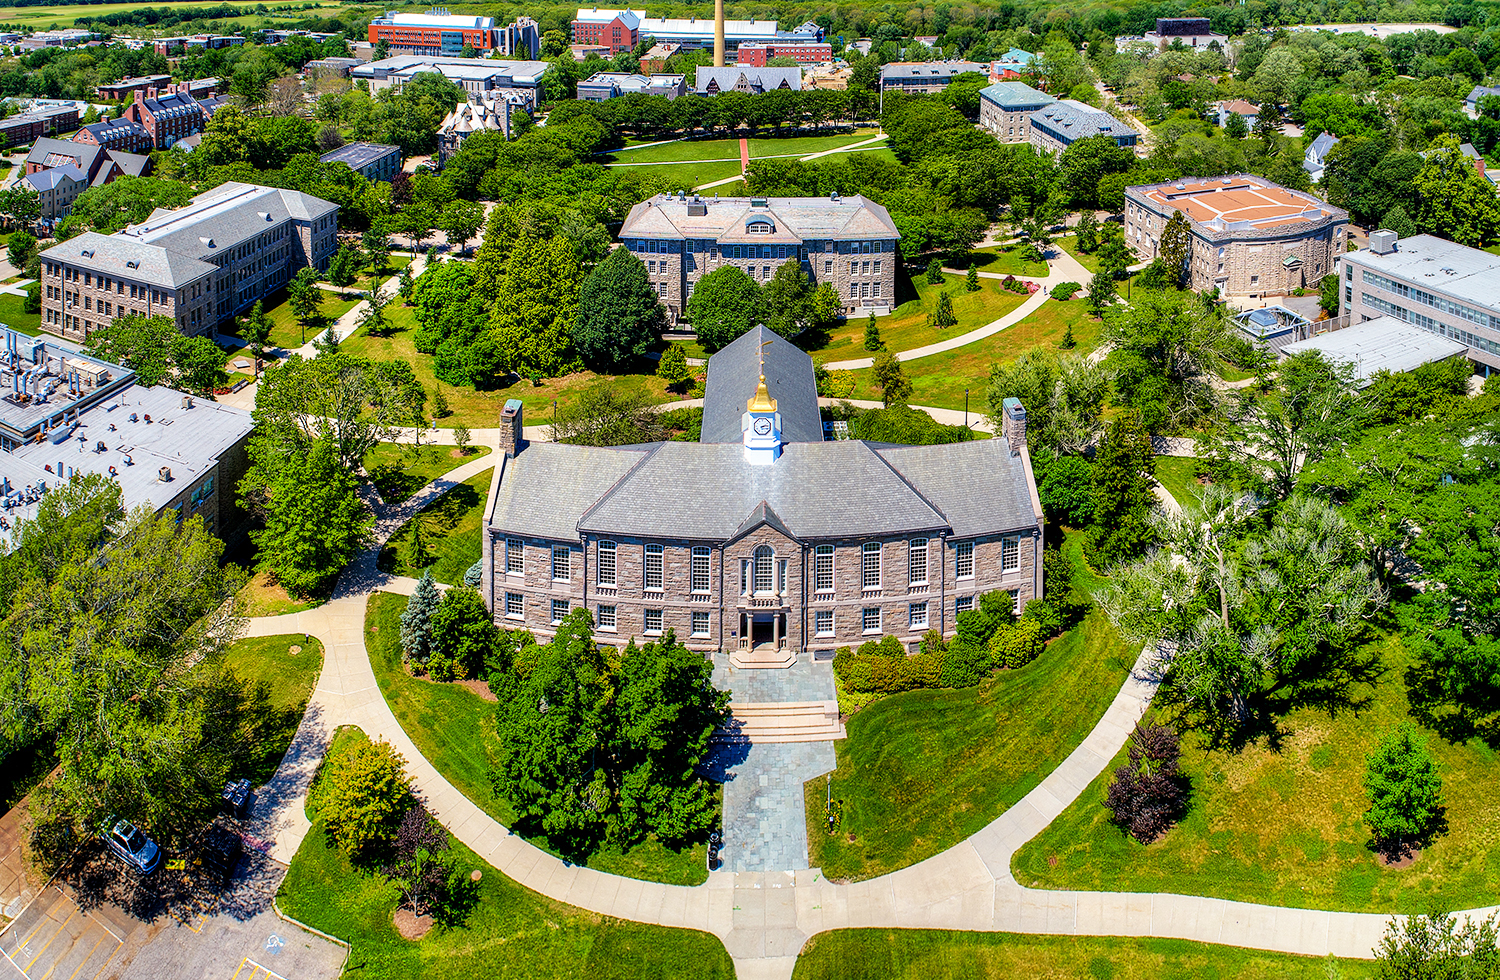 aerial view of Green Hall